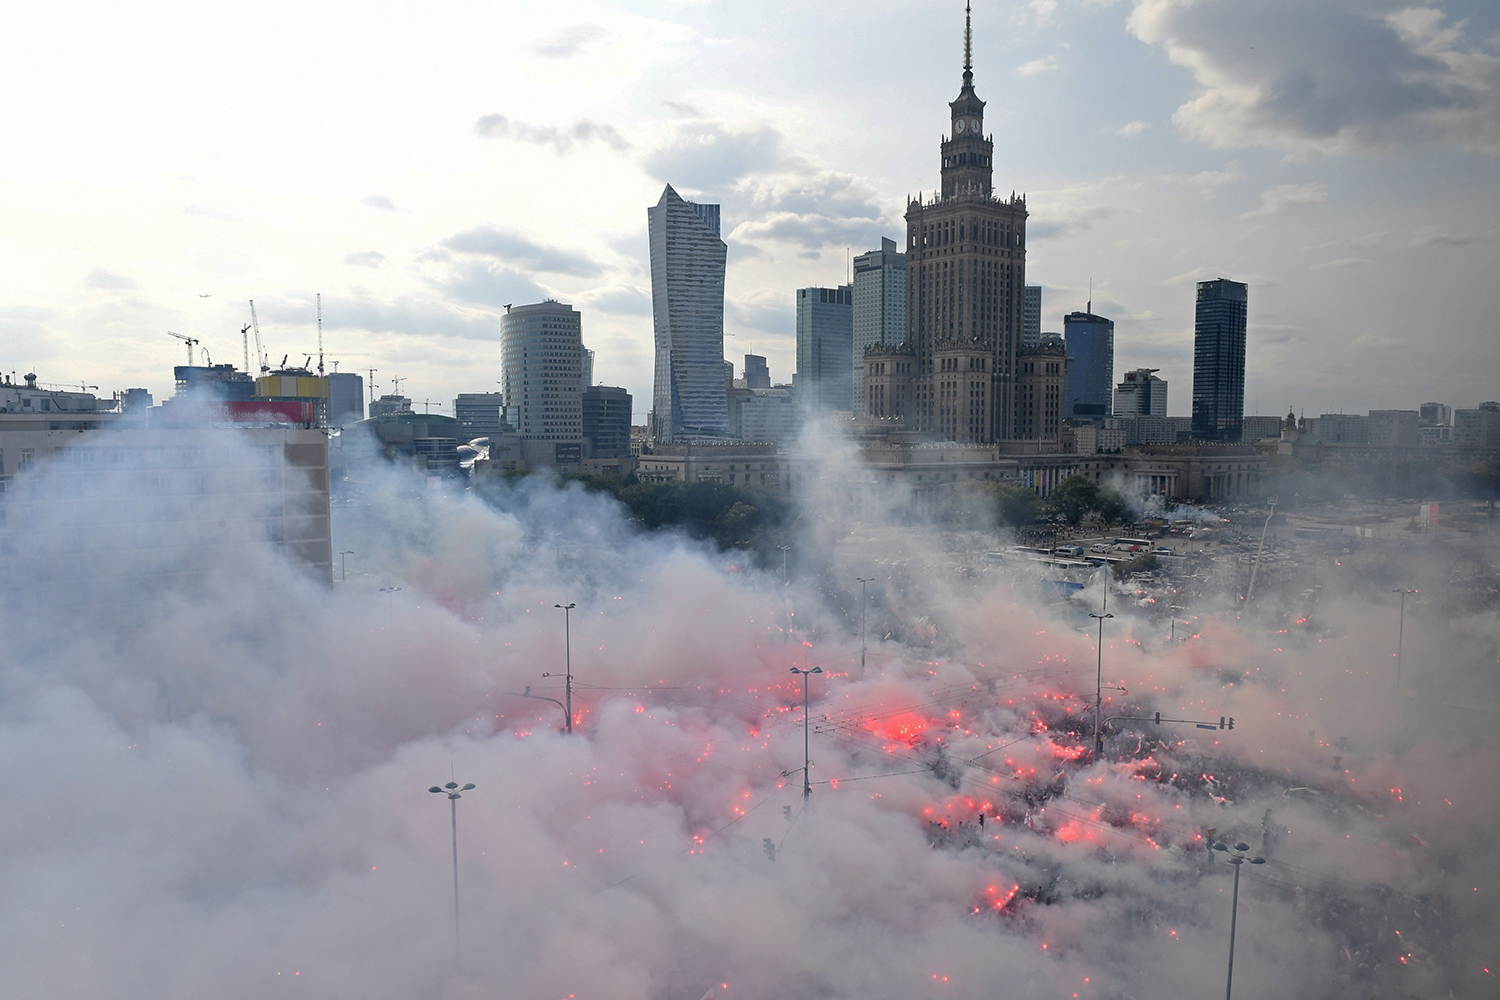 People light flares as they observe a minute of silence to mark the 75th anniversary of the Warsaw Uprising against the Nazi German occupiers during World War II in Poland on Aug. 1. JANEK SKARZYNSKI/AFP/Getty Images